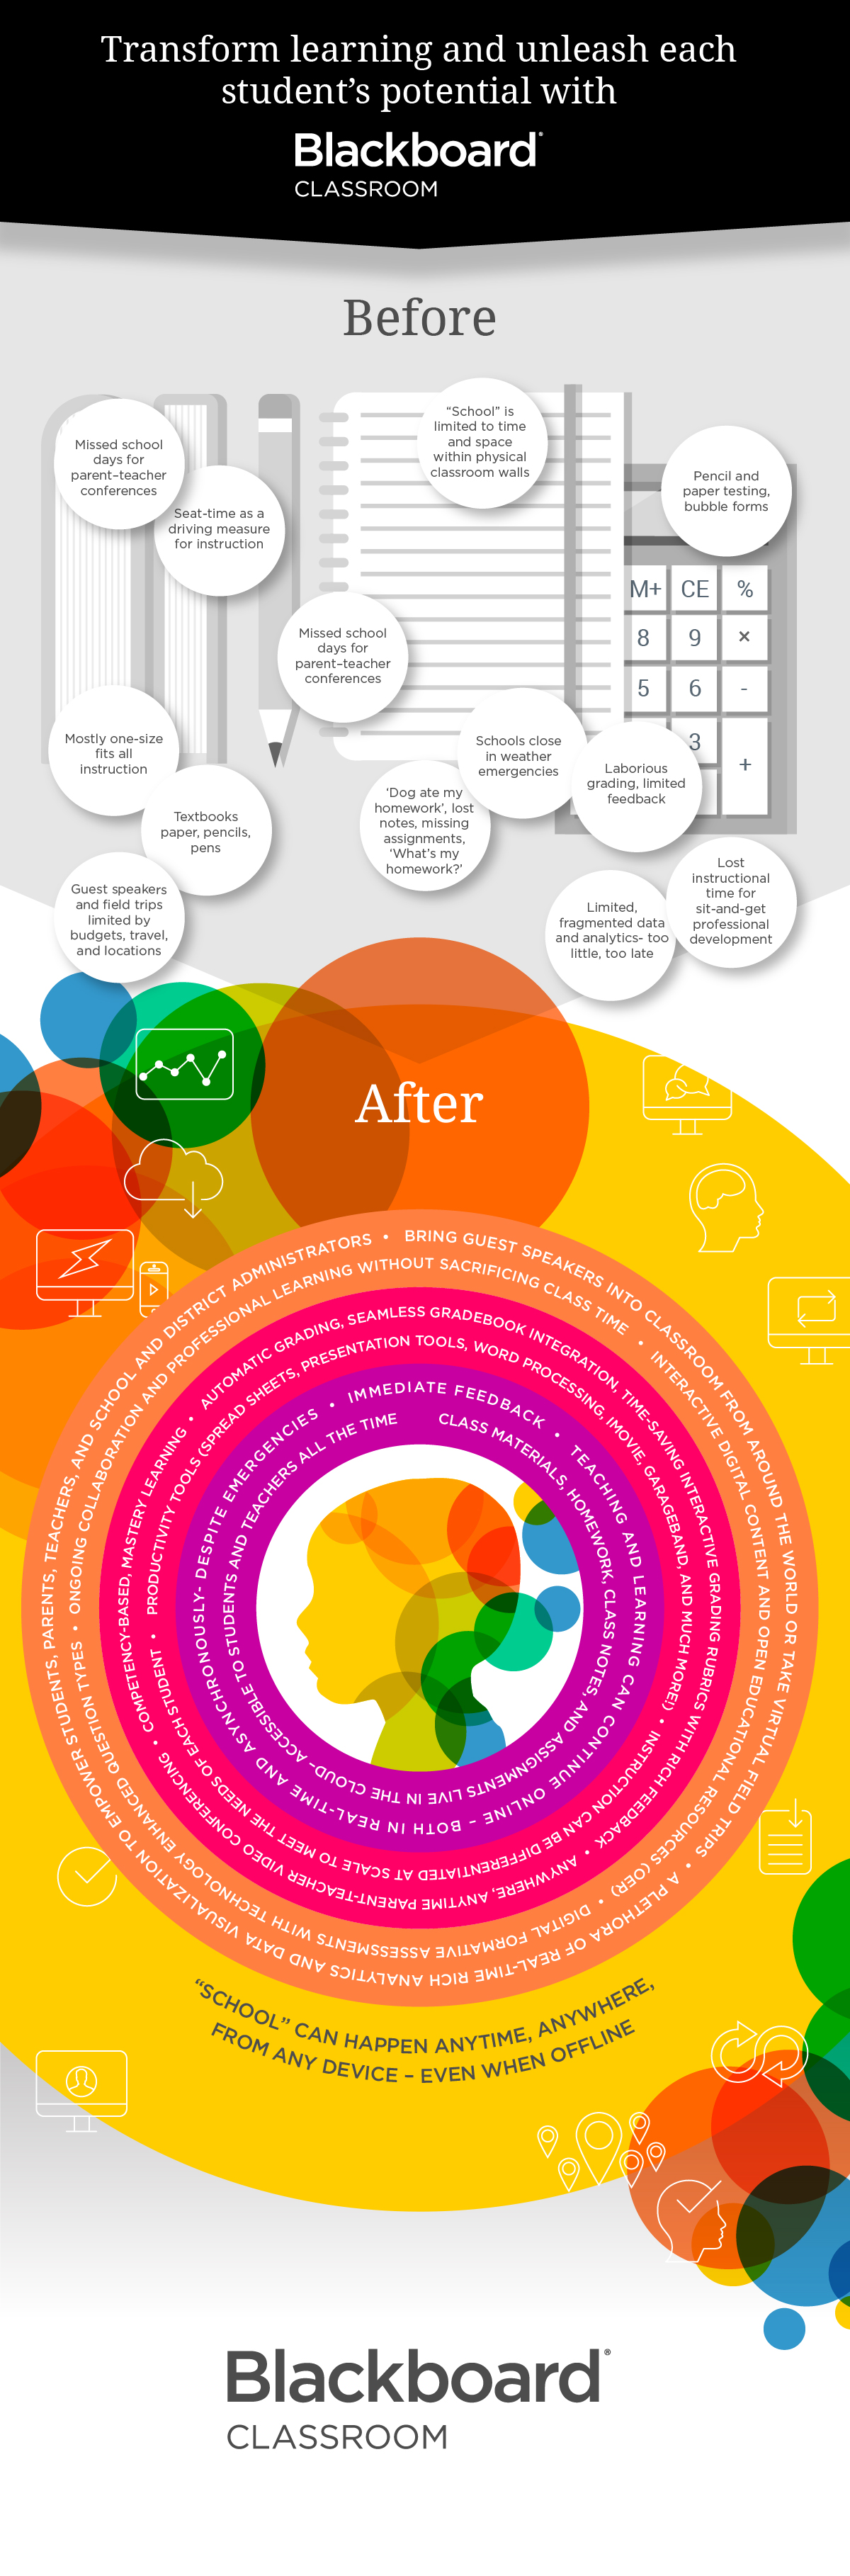 Before and after Blackboard Classroom. Learn more about our new offering.